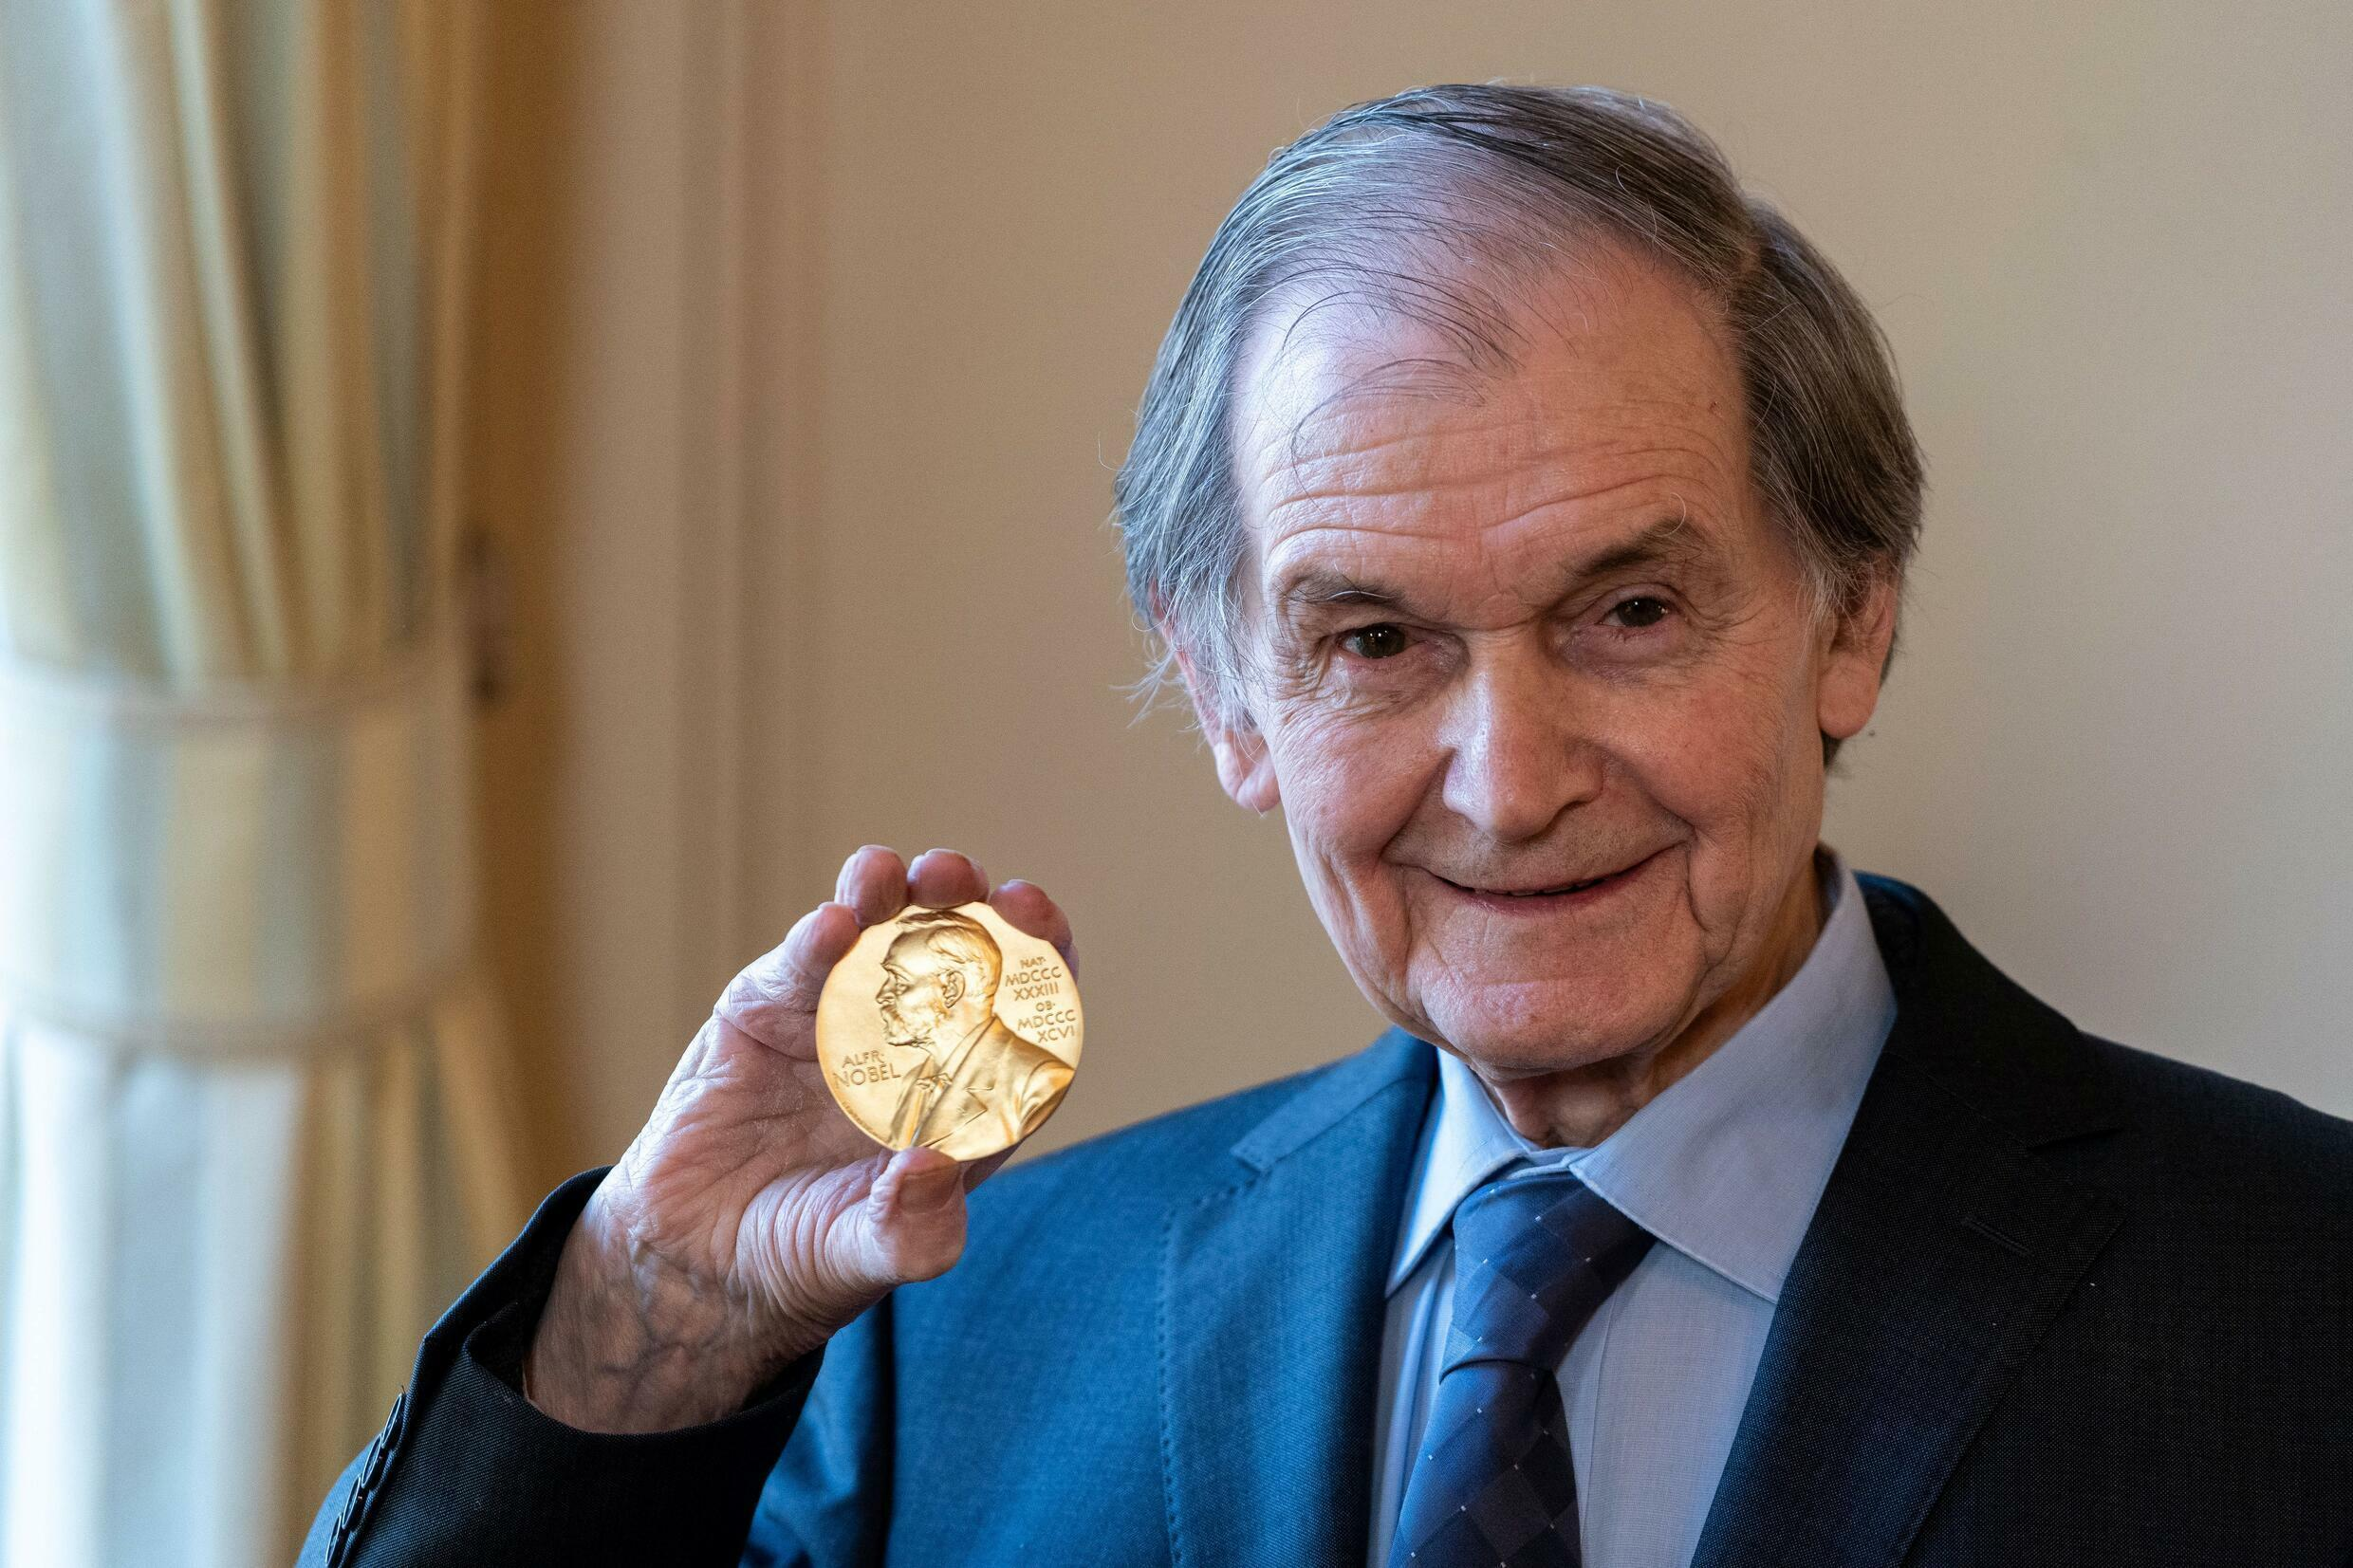 Nobel laureate in physics Roger Penrose received the 2020 prize with Reinhard Genzel from Germany and Andrea Ghez from the United States